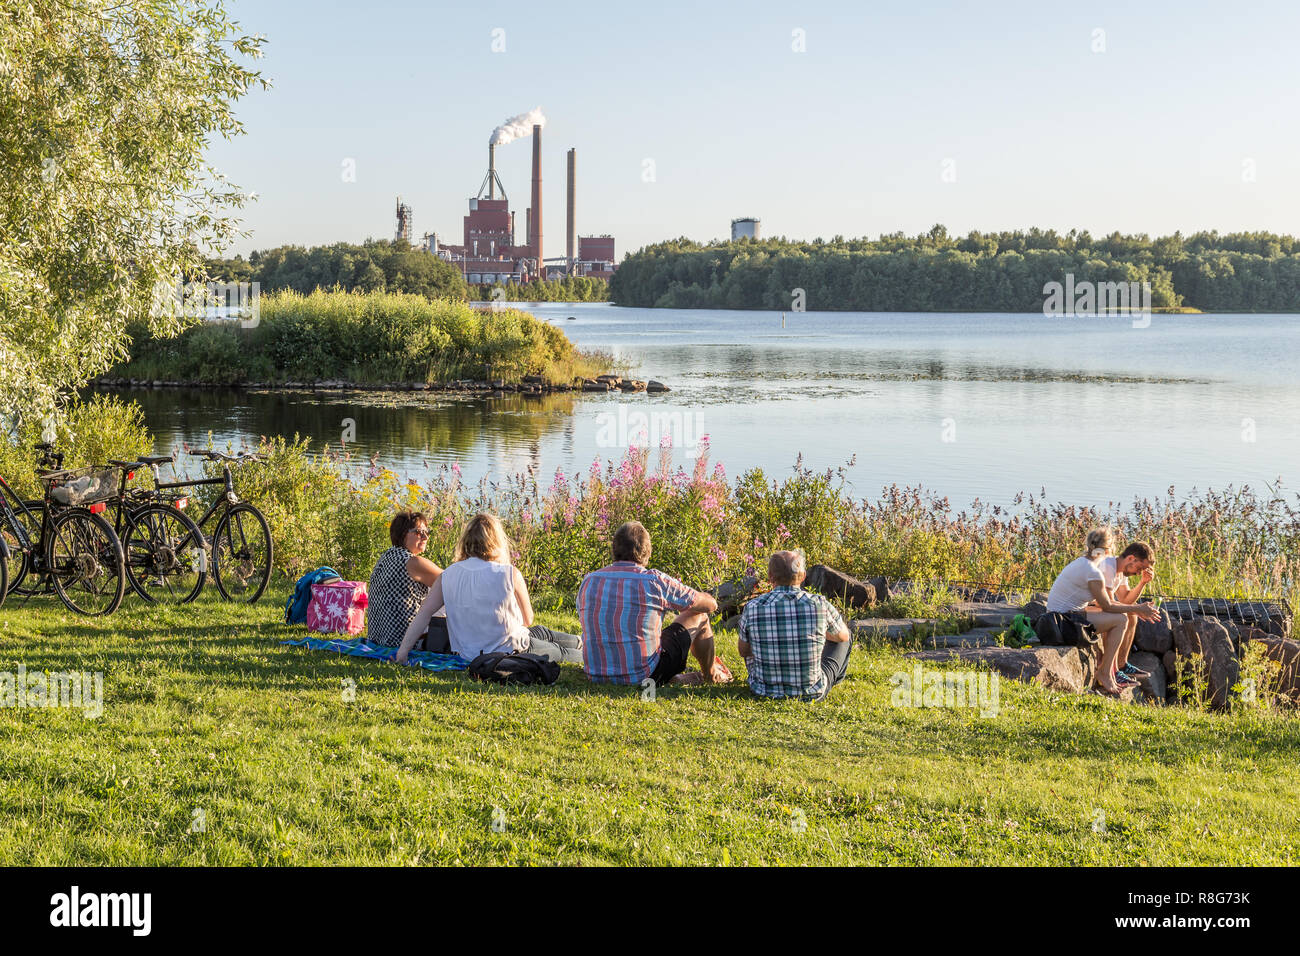 OULU, FINLAND - JULY 21, 2016: View on the Industrial plant near the center of Oulu Finland - Stock Image